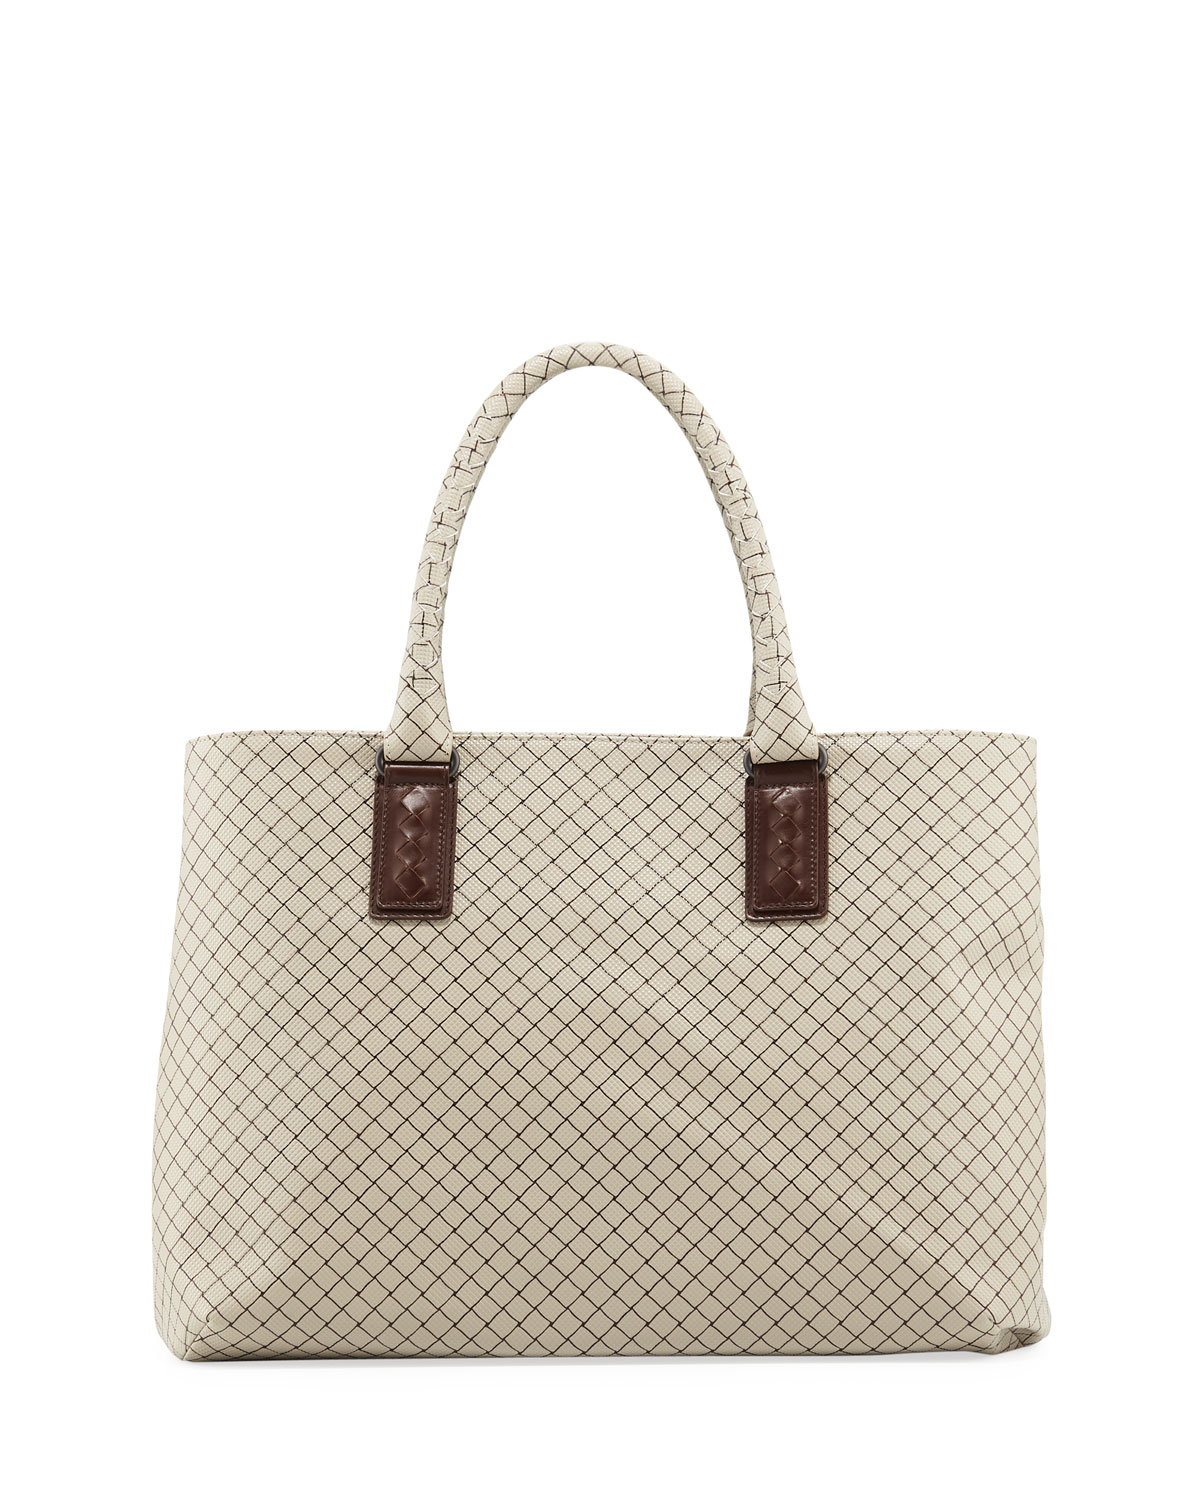 c42aa586f383 Bottega Veneta Medium Intrecciato-Trim Stamped Rubber Tote Bag ...